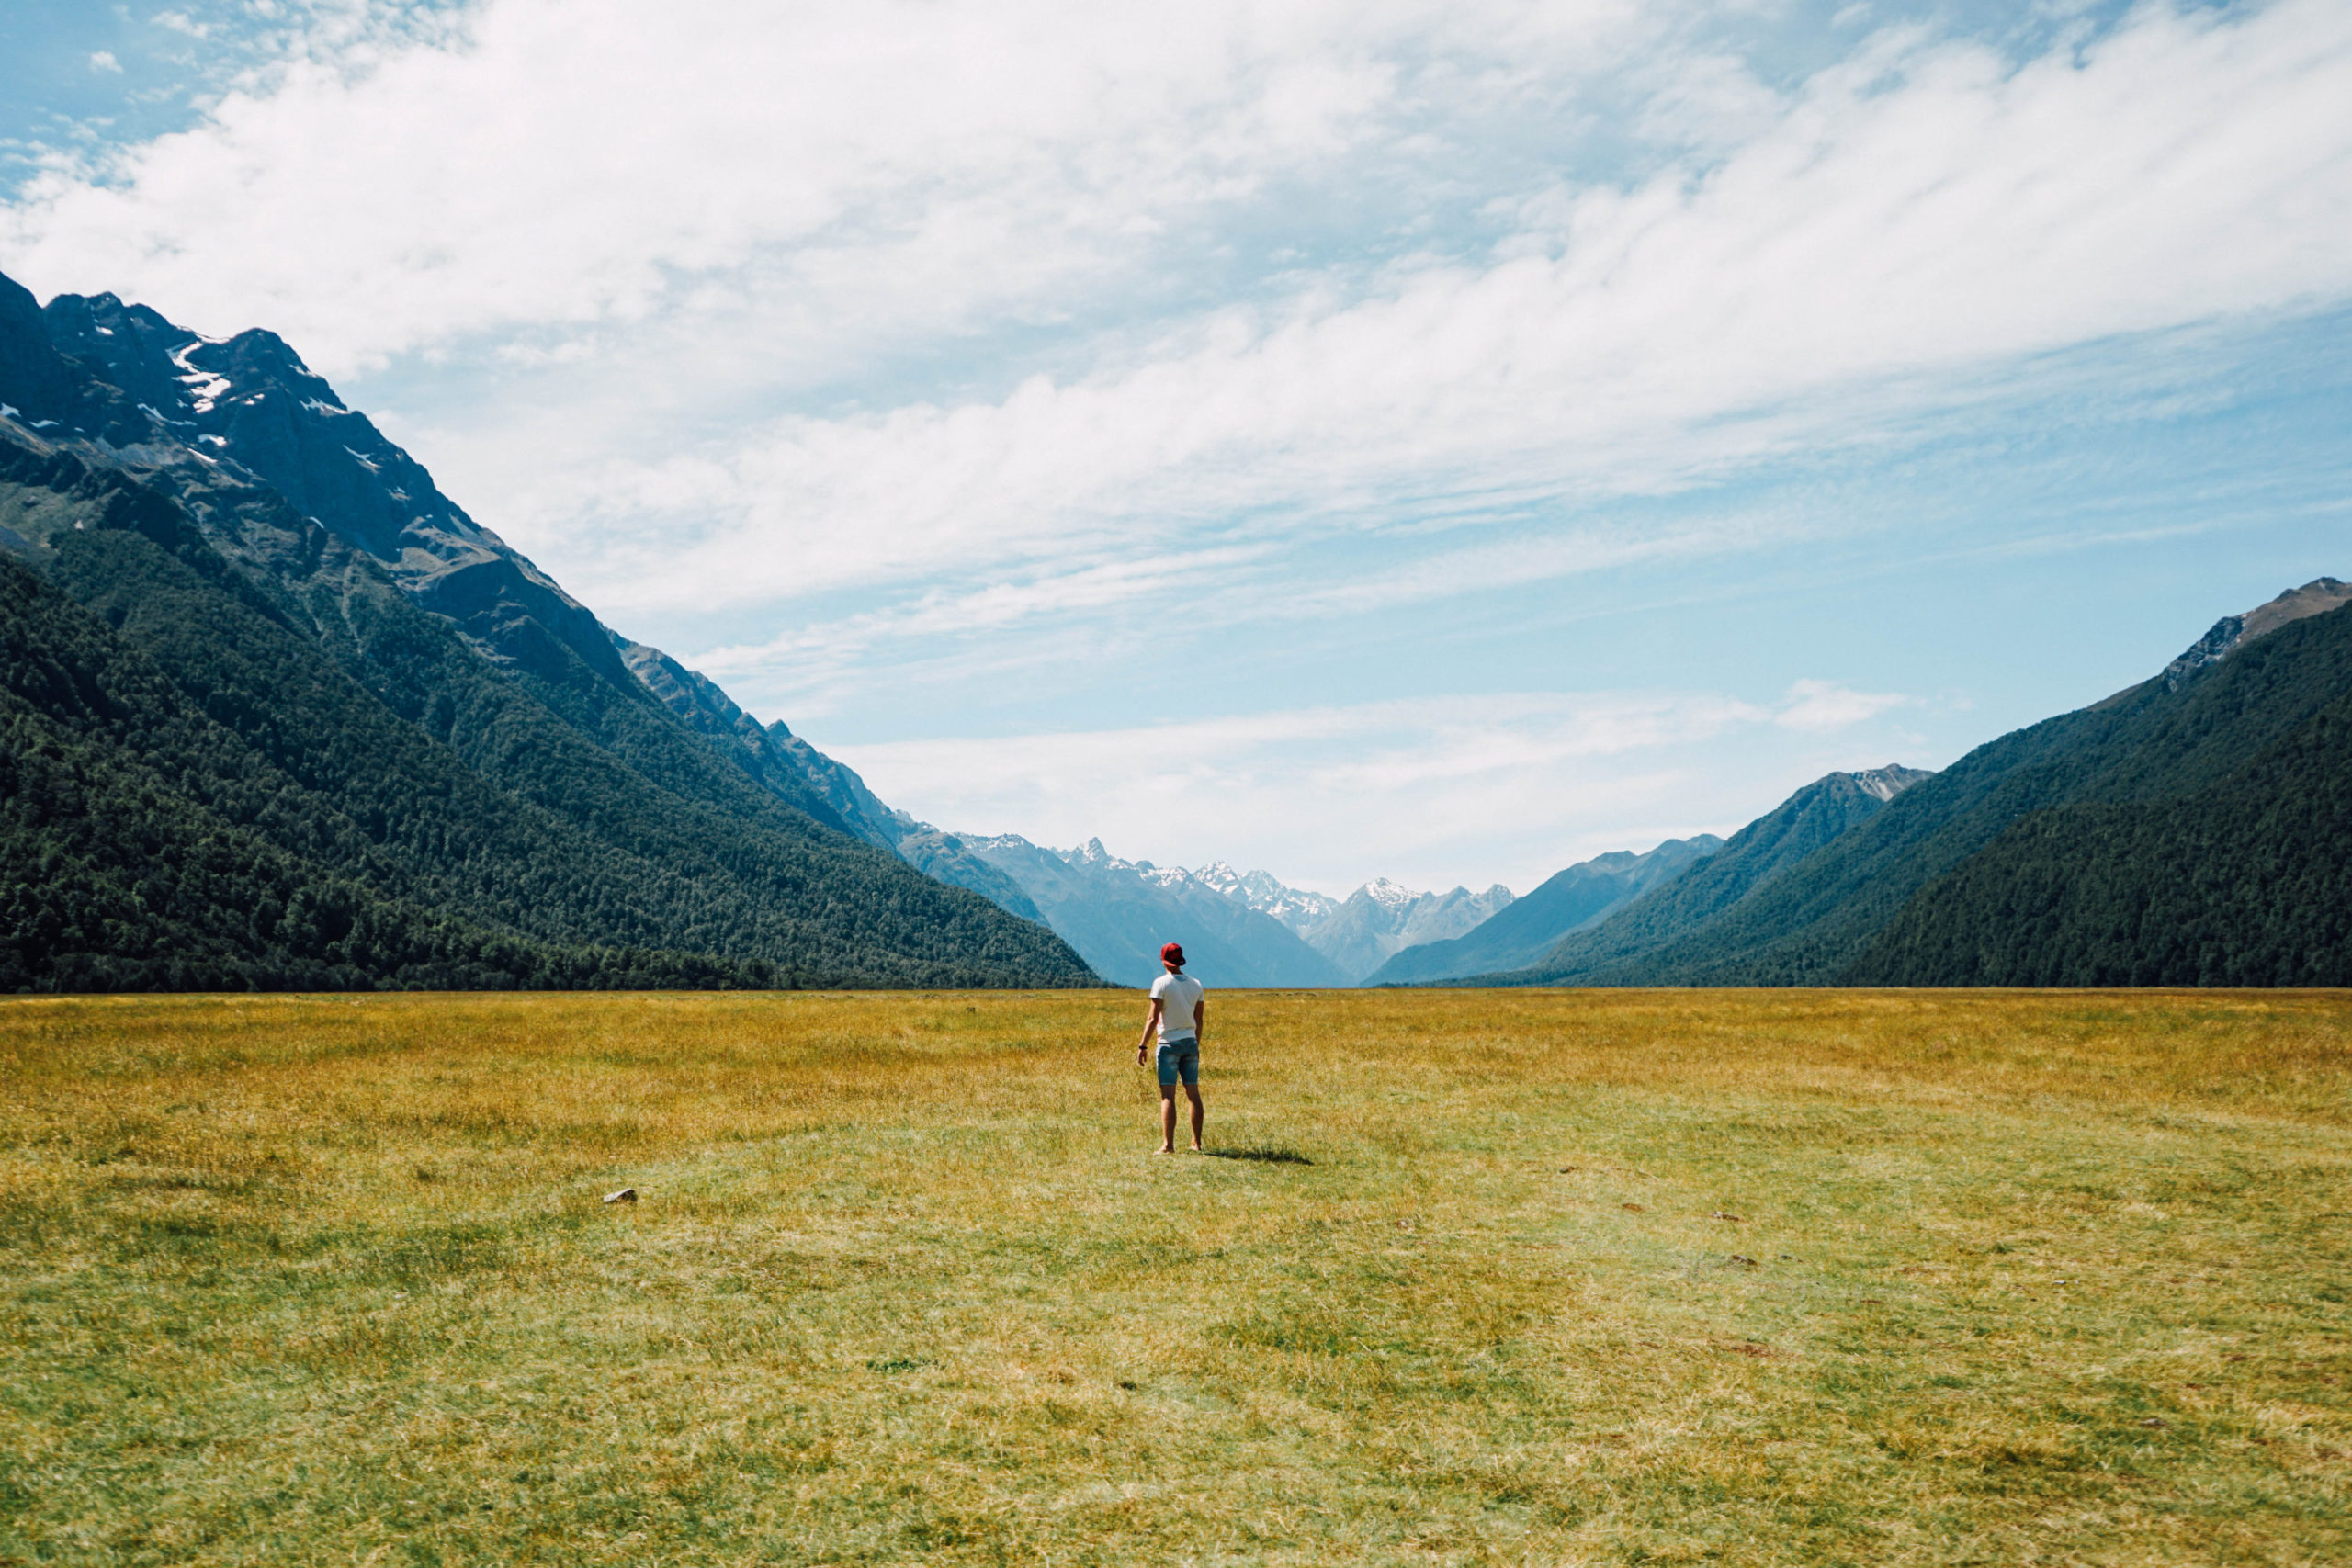 A Backpackers Guide to New Zealand (Part 1)